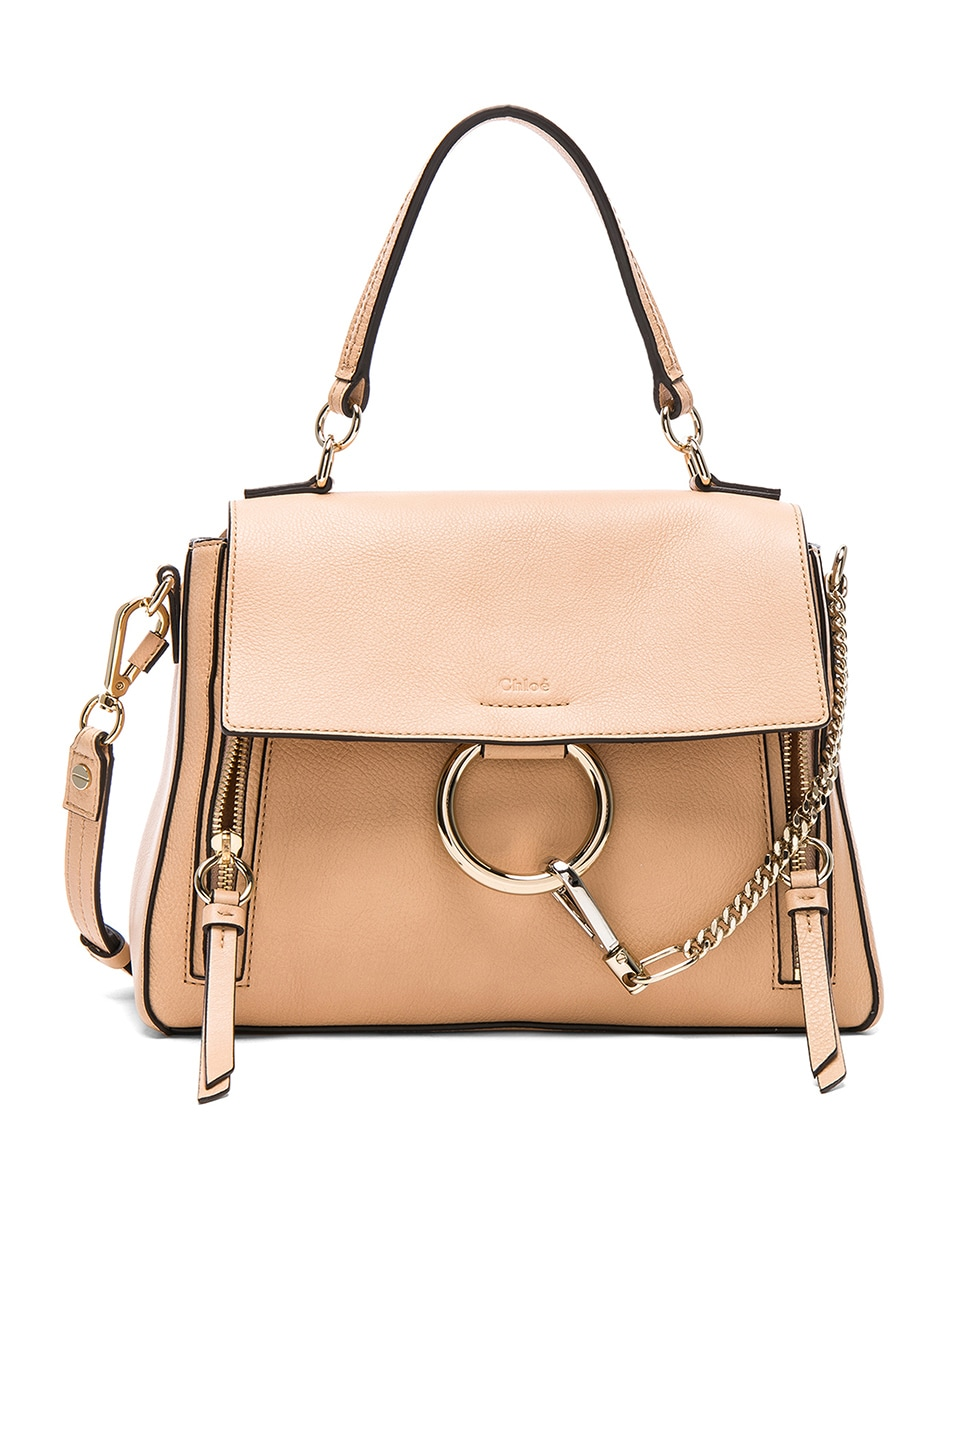 Image 1 of Chloe Small Faye Calfskin & Suede Day Bag in Blush Nude